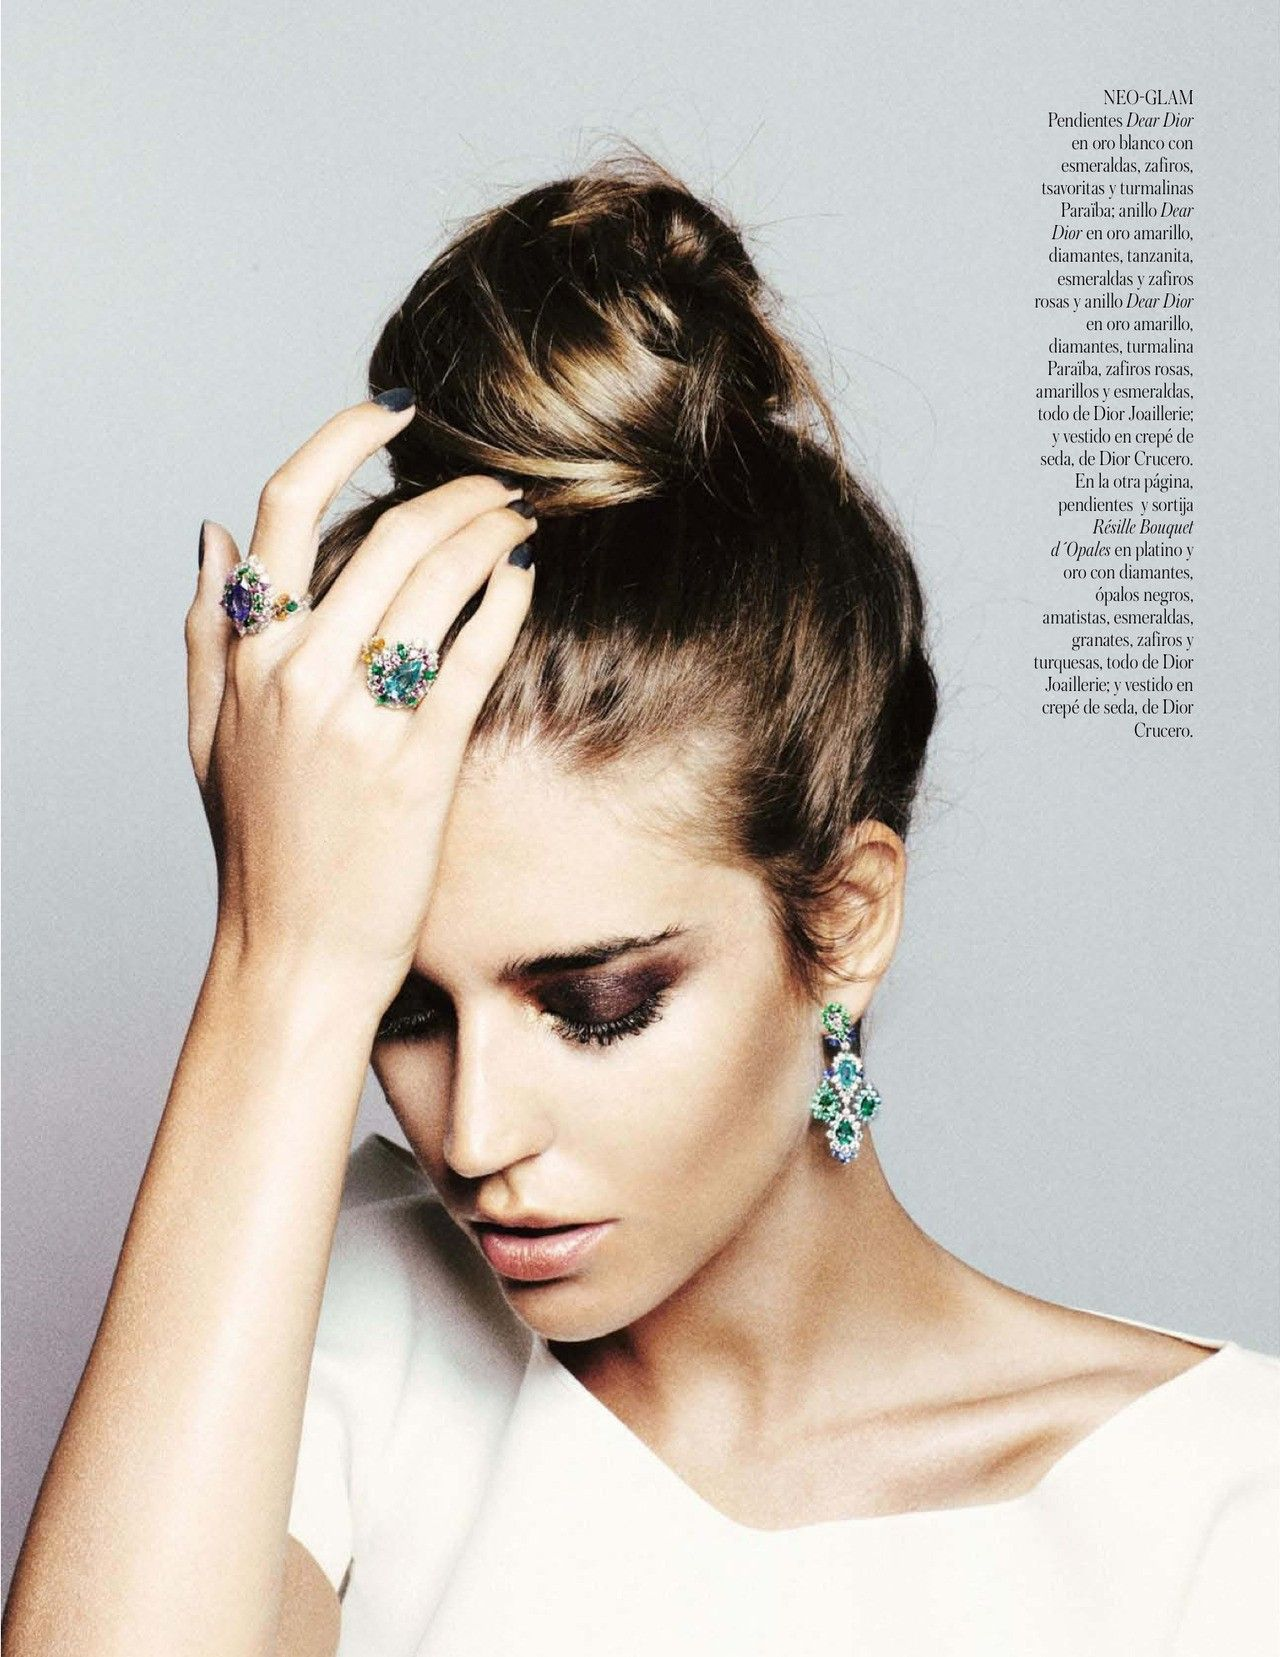 Clara Alonso by Quentin De Briey for Vogue Spain February 2013